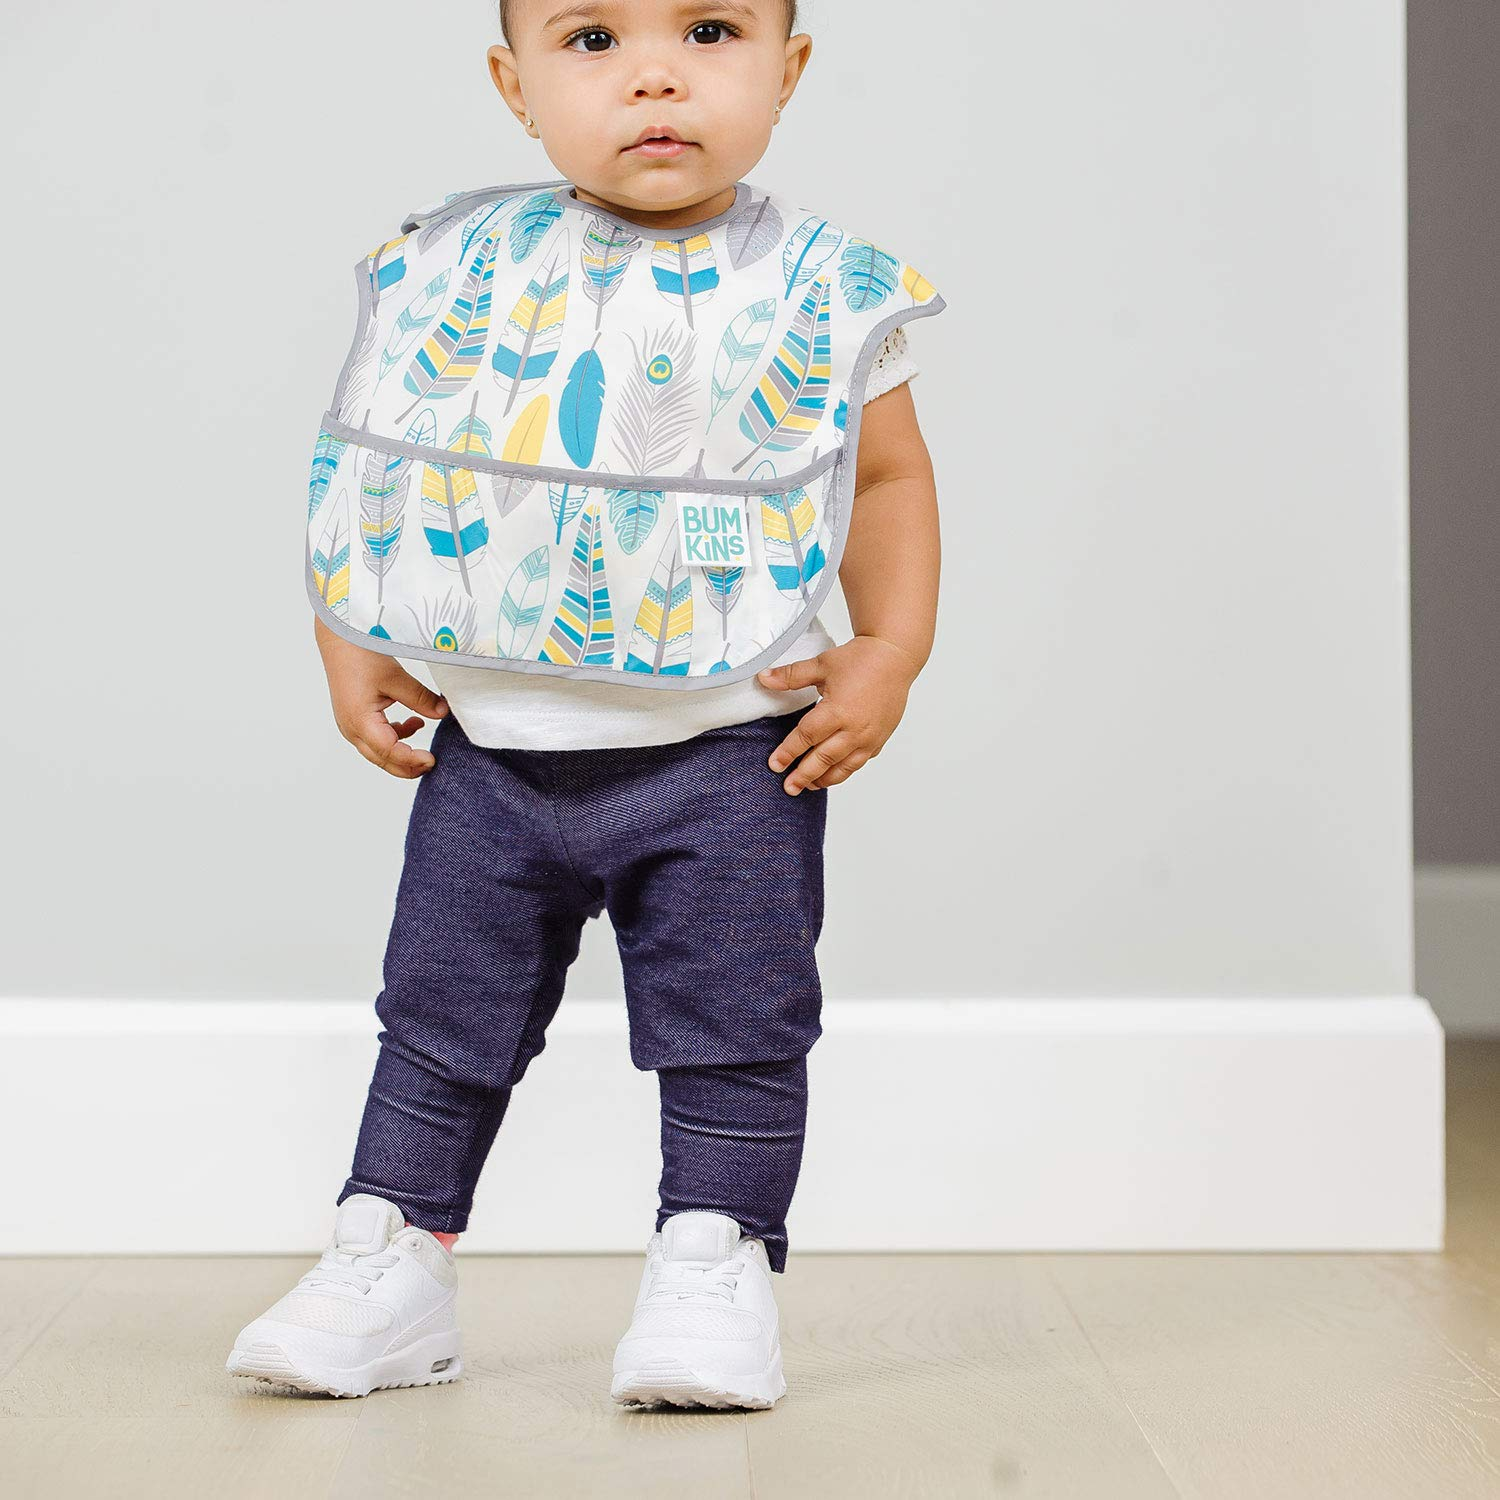 Feathers Baby Bib Stain and Odor Resistant 6-24 Months Quill Washable Waterproof Arrows Bumkins SuperBib 3-Pack